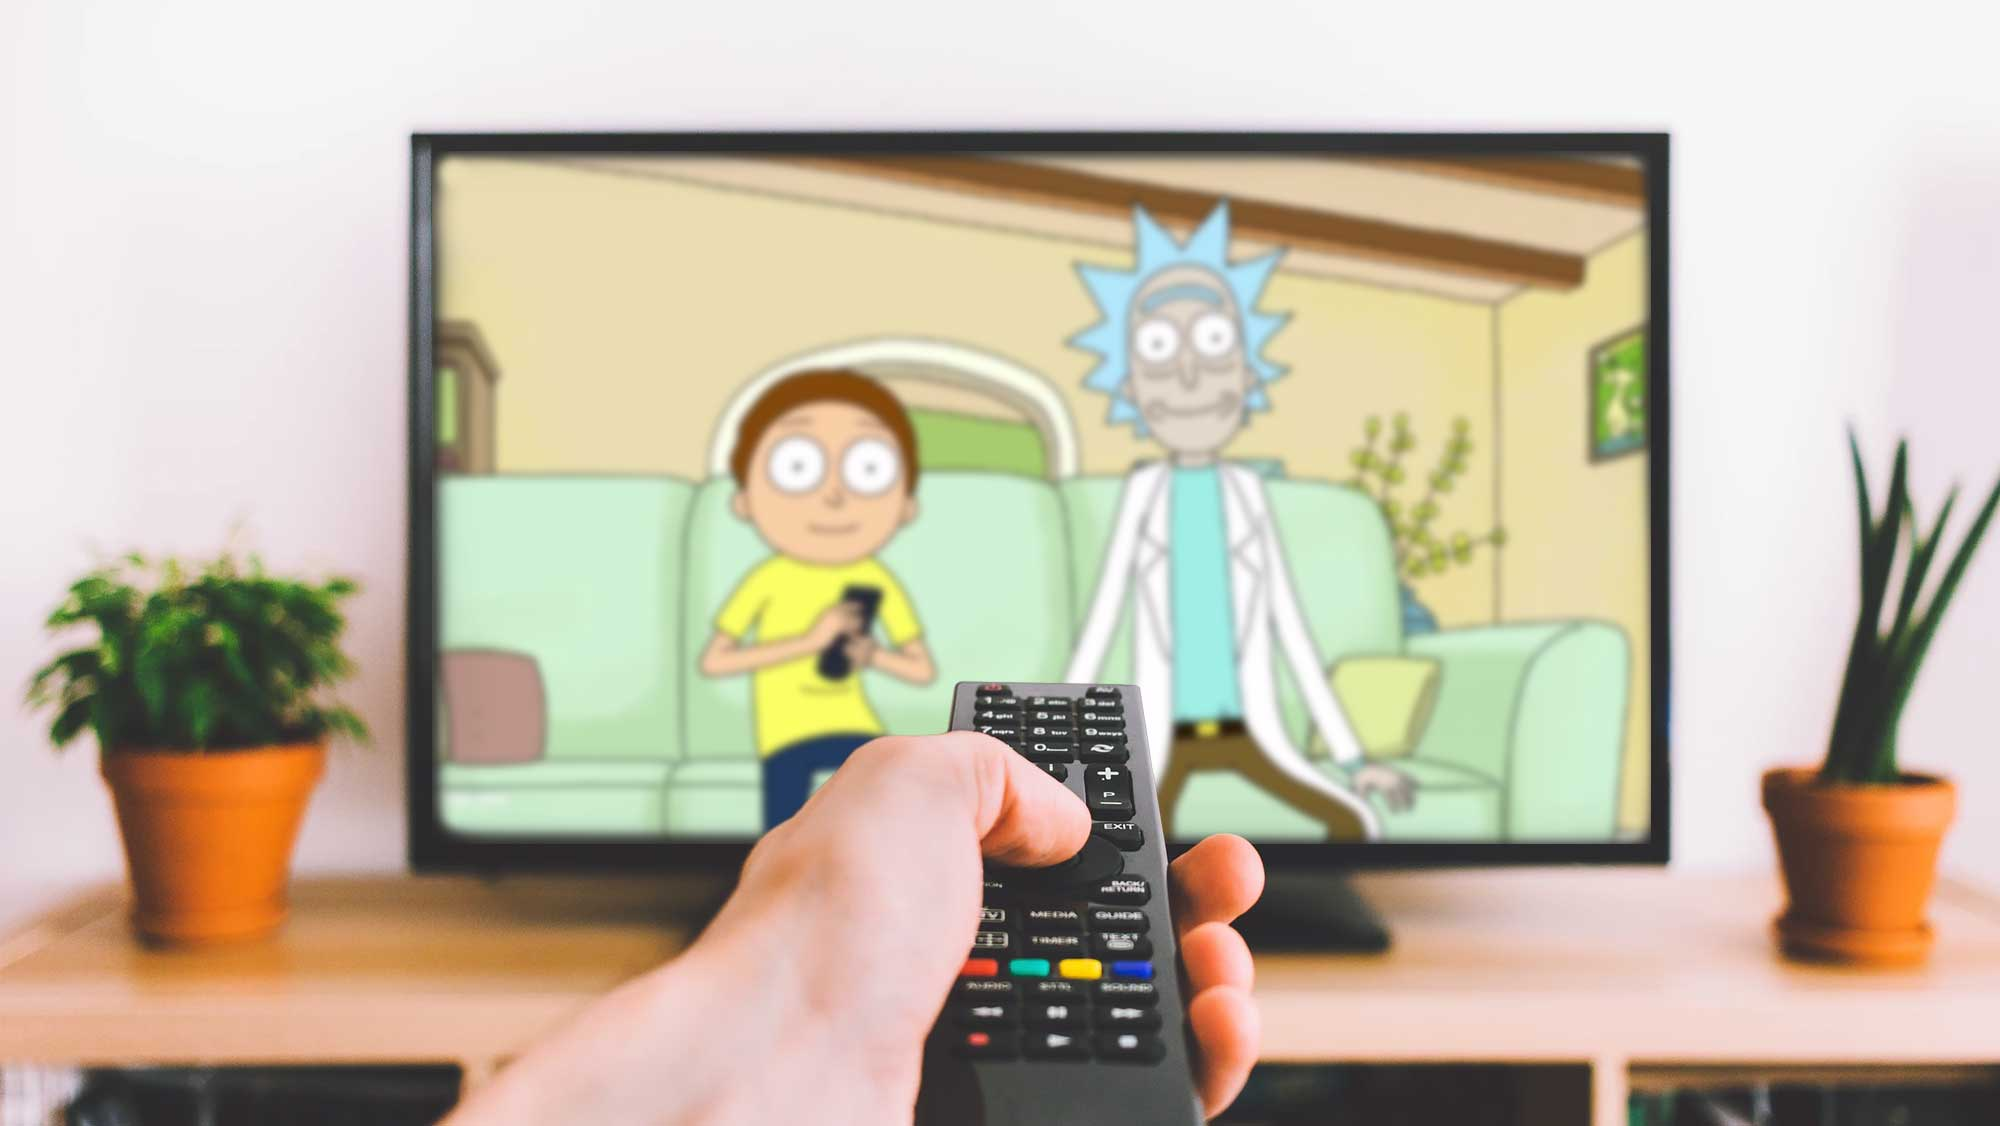 wer-gerne-rick-and-morty-schaut-mag-auch_THUMB Wer RICK AND MORTY schaut, mag auch...